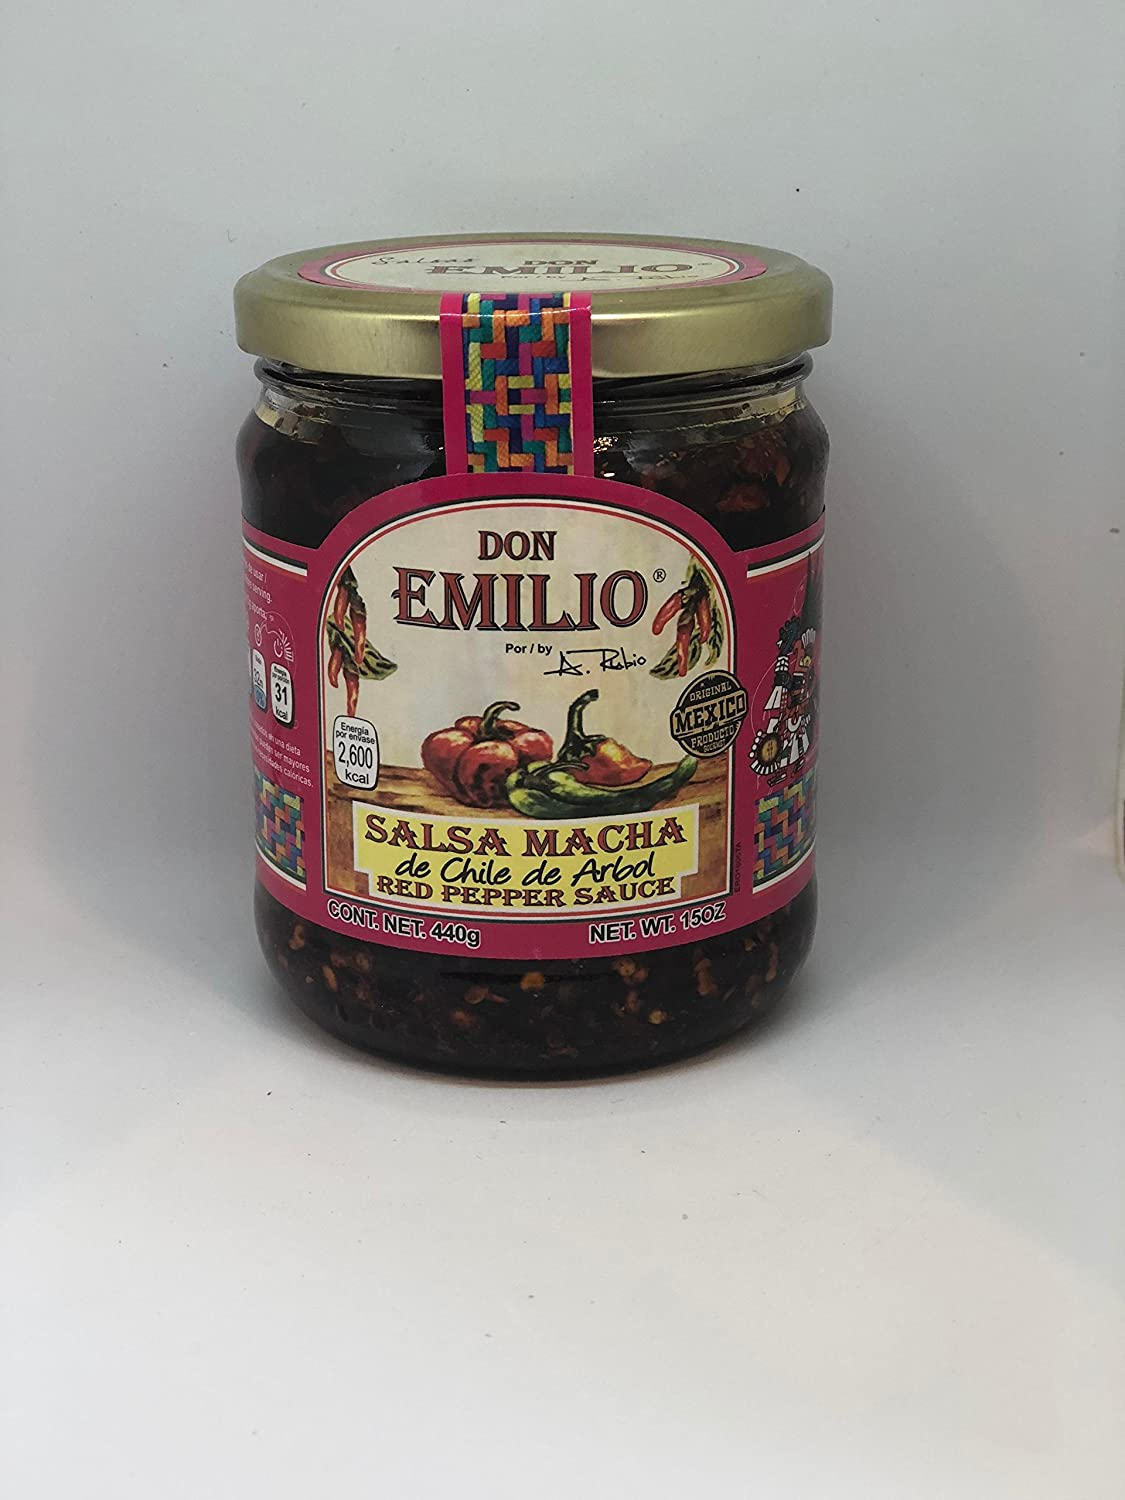 Amazon.com : Salsas Machas Don Emilio 15 oz Chile de árbol made in Mexico : Grocery & Gourmet Food